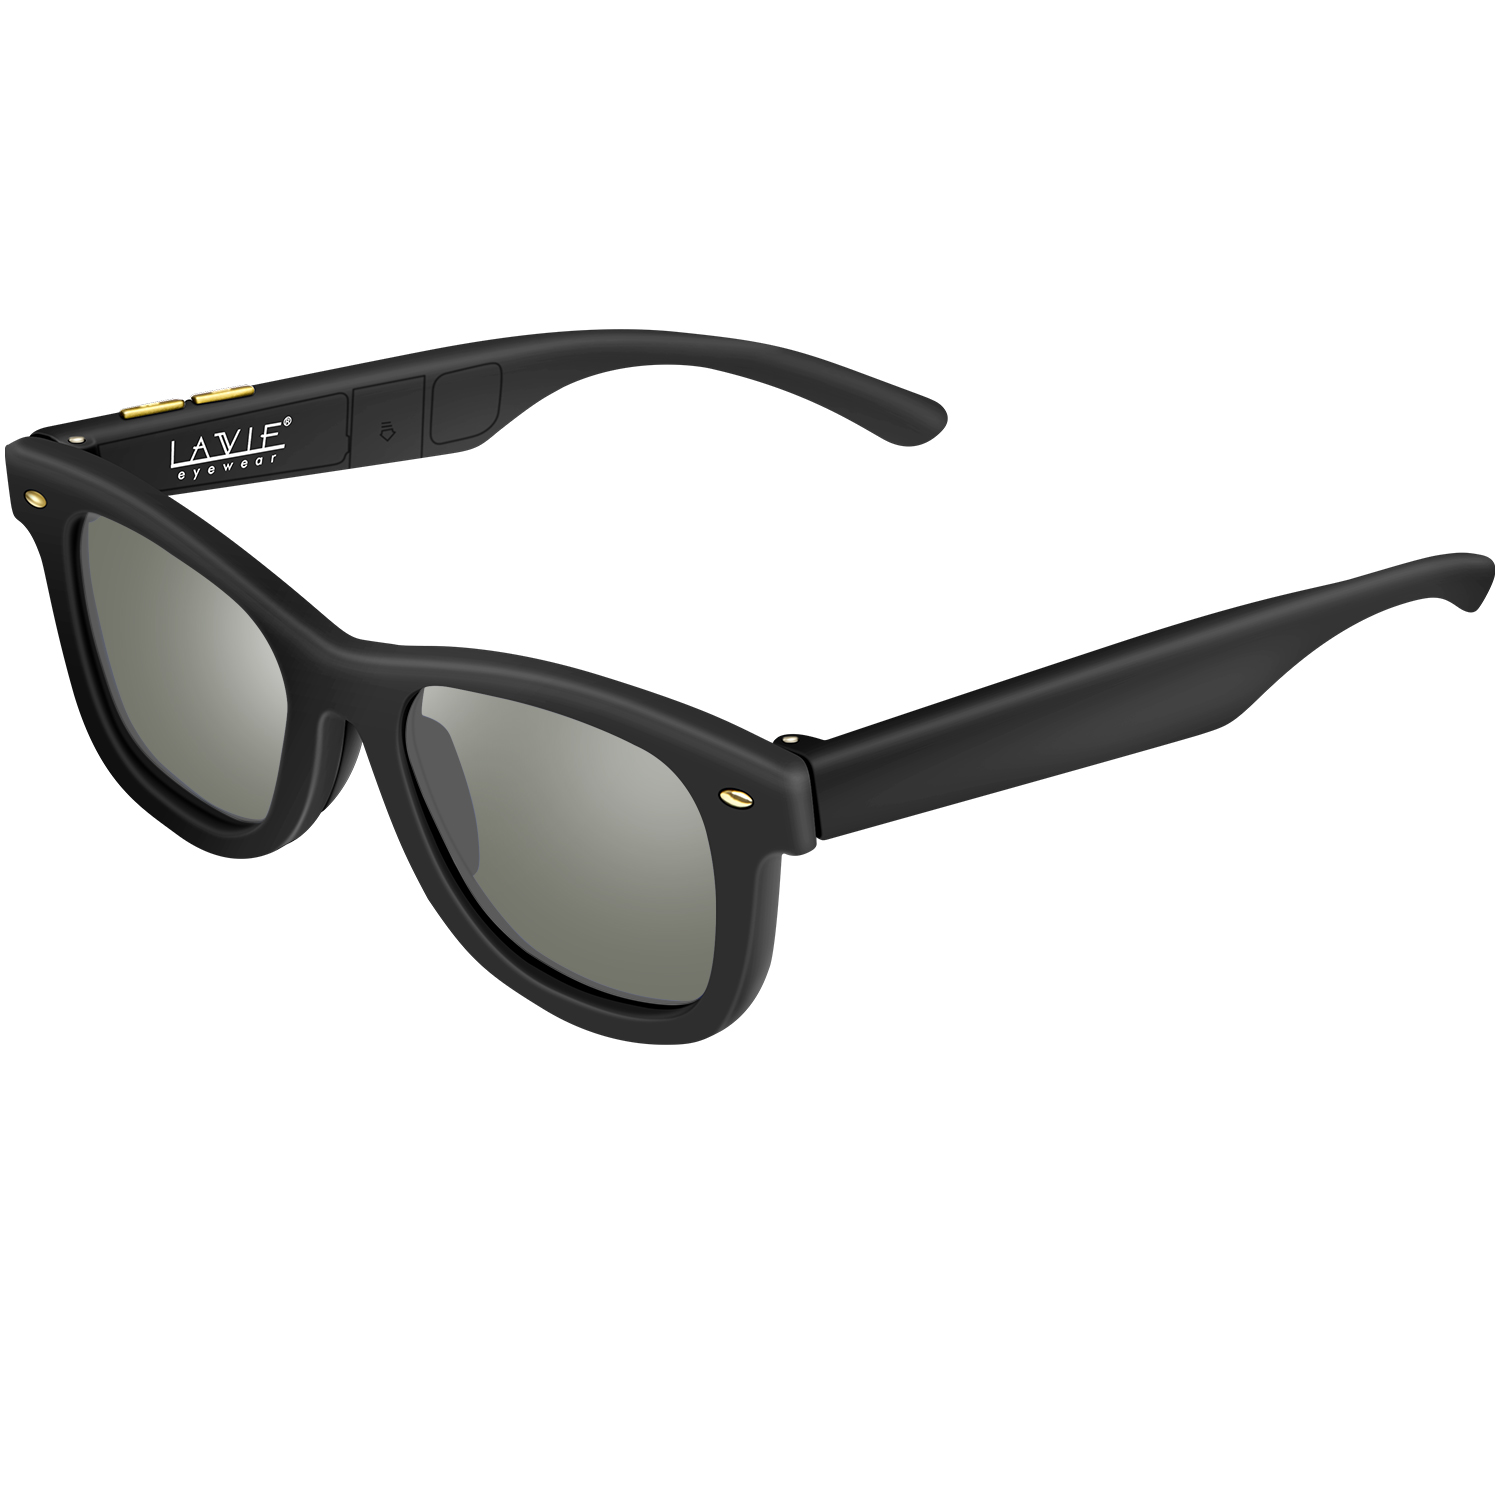 Sunglasses with Variable Electronic Tint Control Sunglasses Men Polarized Sunglasses for Women Travelling Driving Shopping Party in Men 39 s Sunglasses from Apparel Accessories